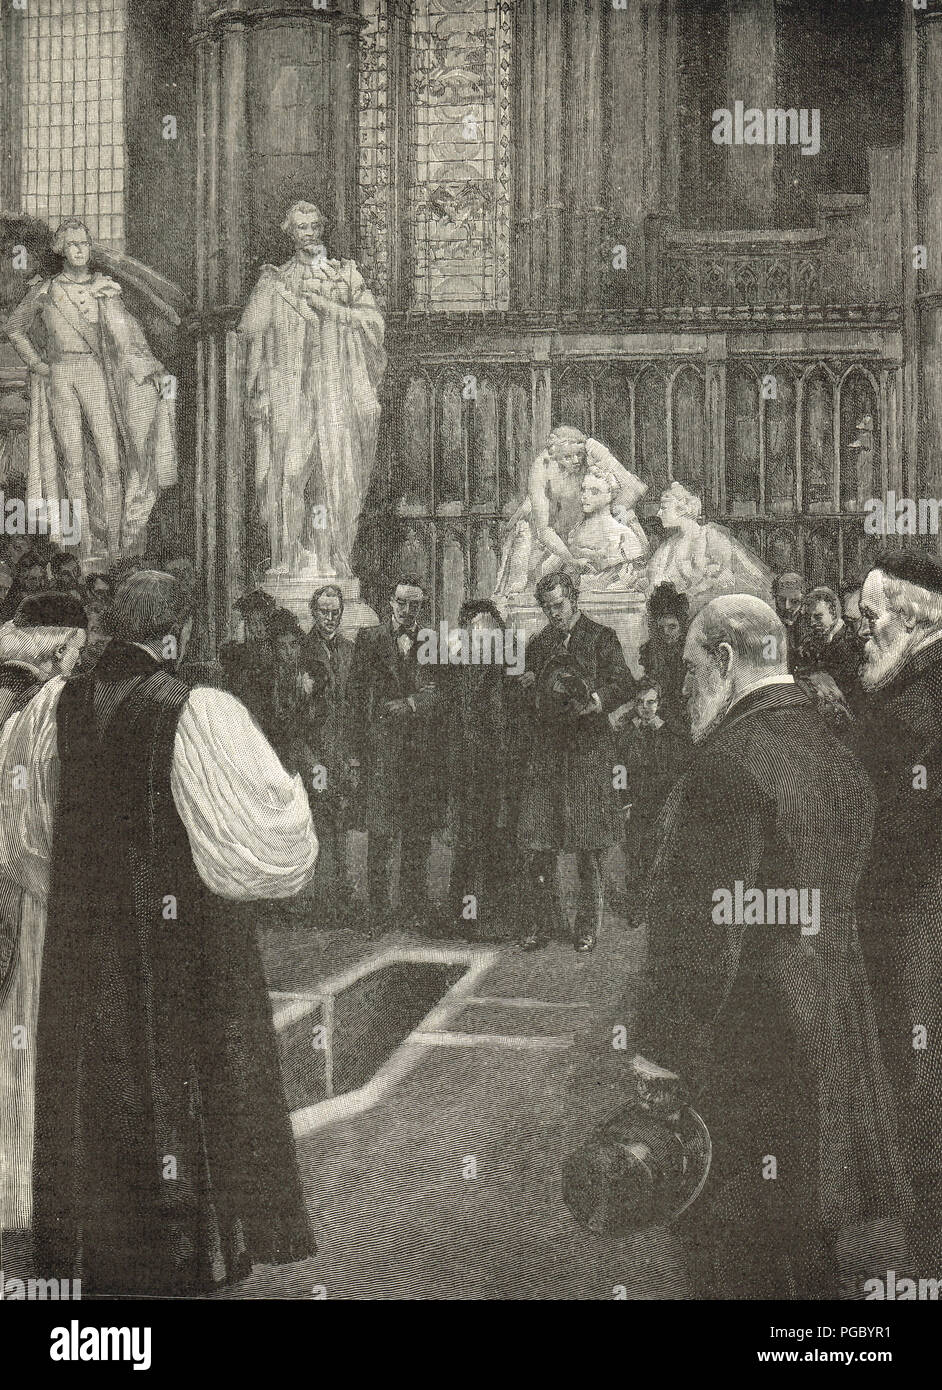 Funeral of William Ewart Gladstone, British Prime Minister, Westminster Abbey, 1898 - Stock Image